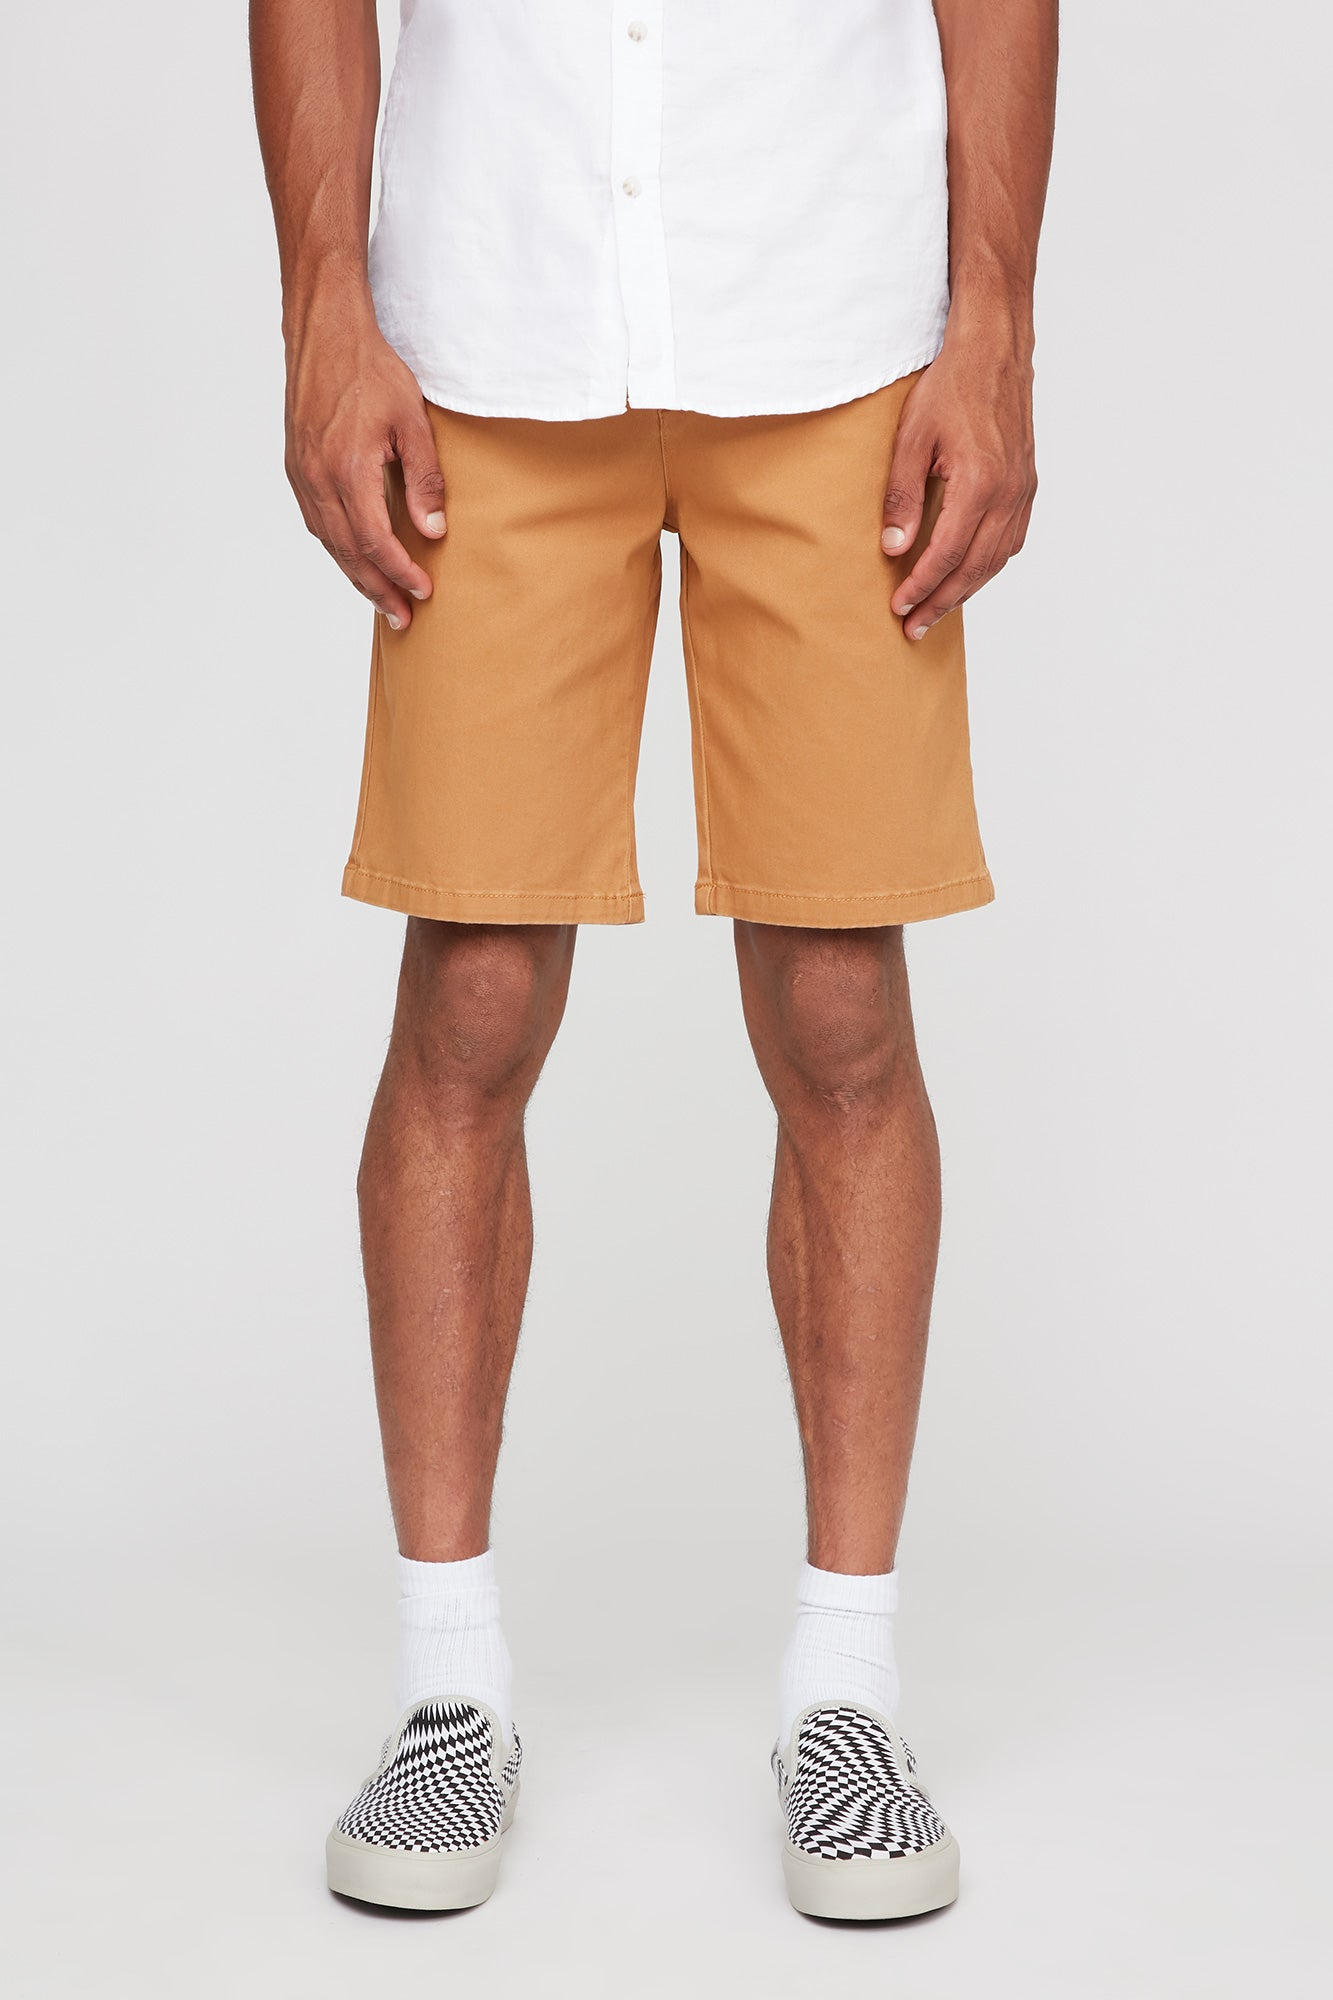 West 49 Guys Chino Relaxed Mustard Shorts